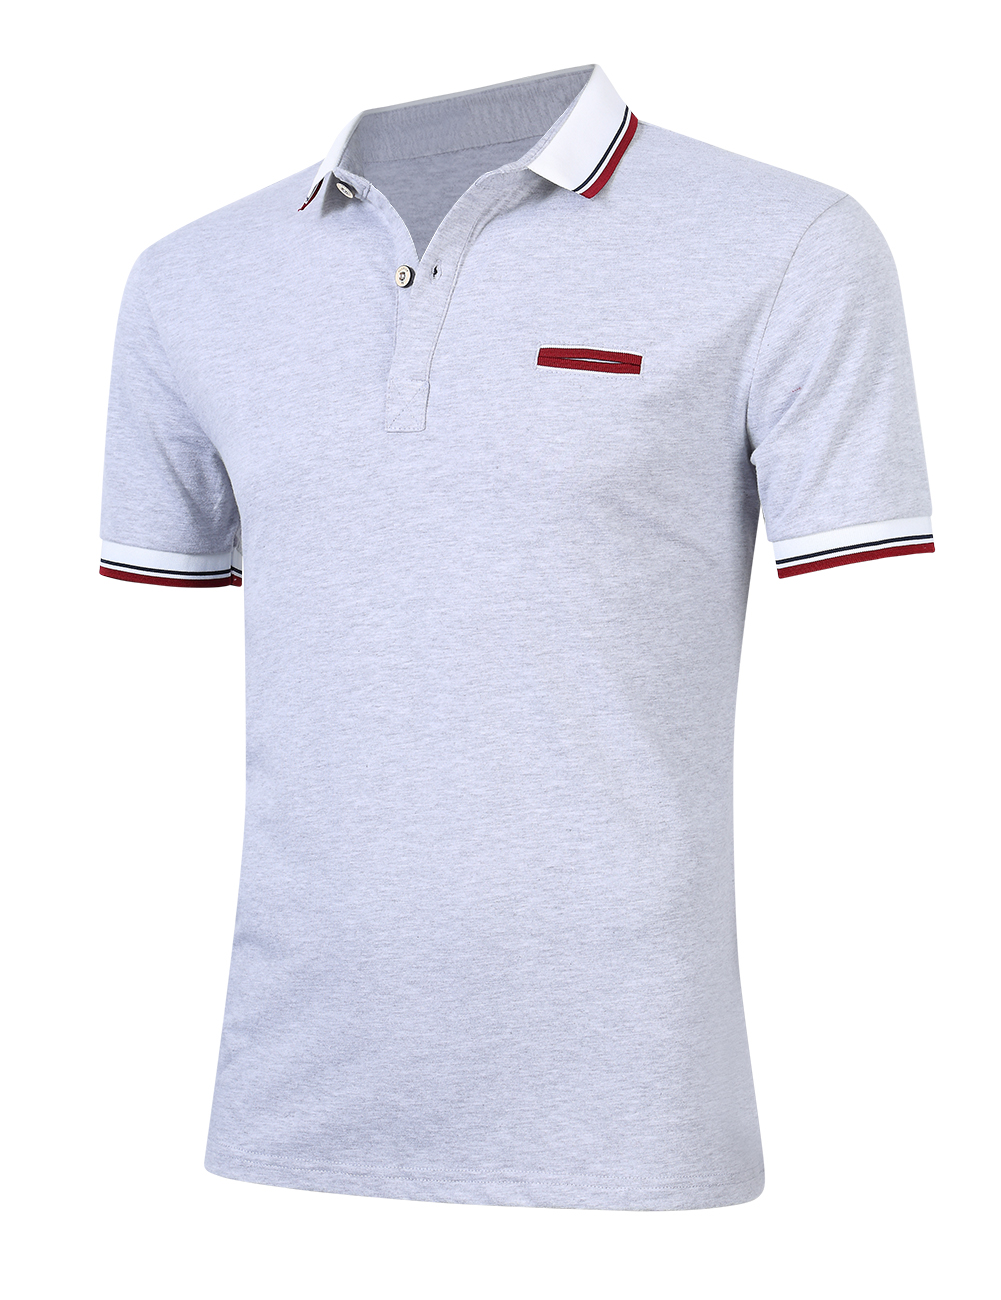 [US Direct] Young Horse Men Cotton Contrast Lapel Short Sleeve Slimming Polo Shirt Grey_5XL